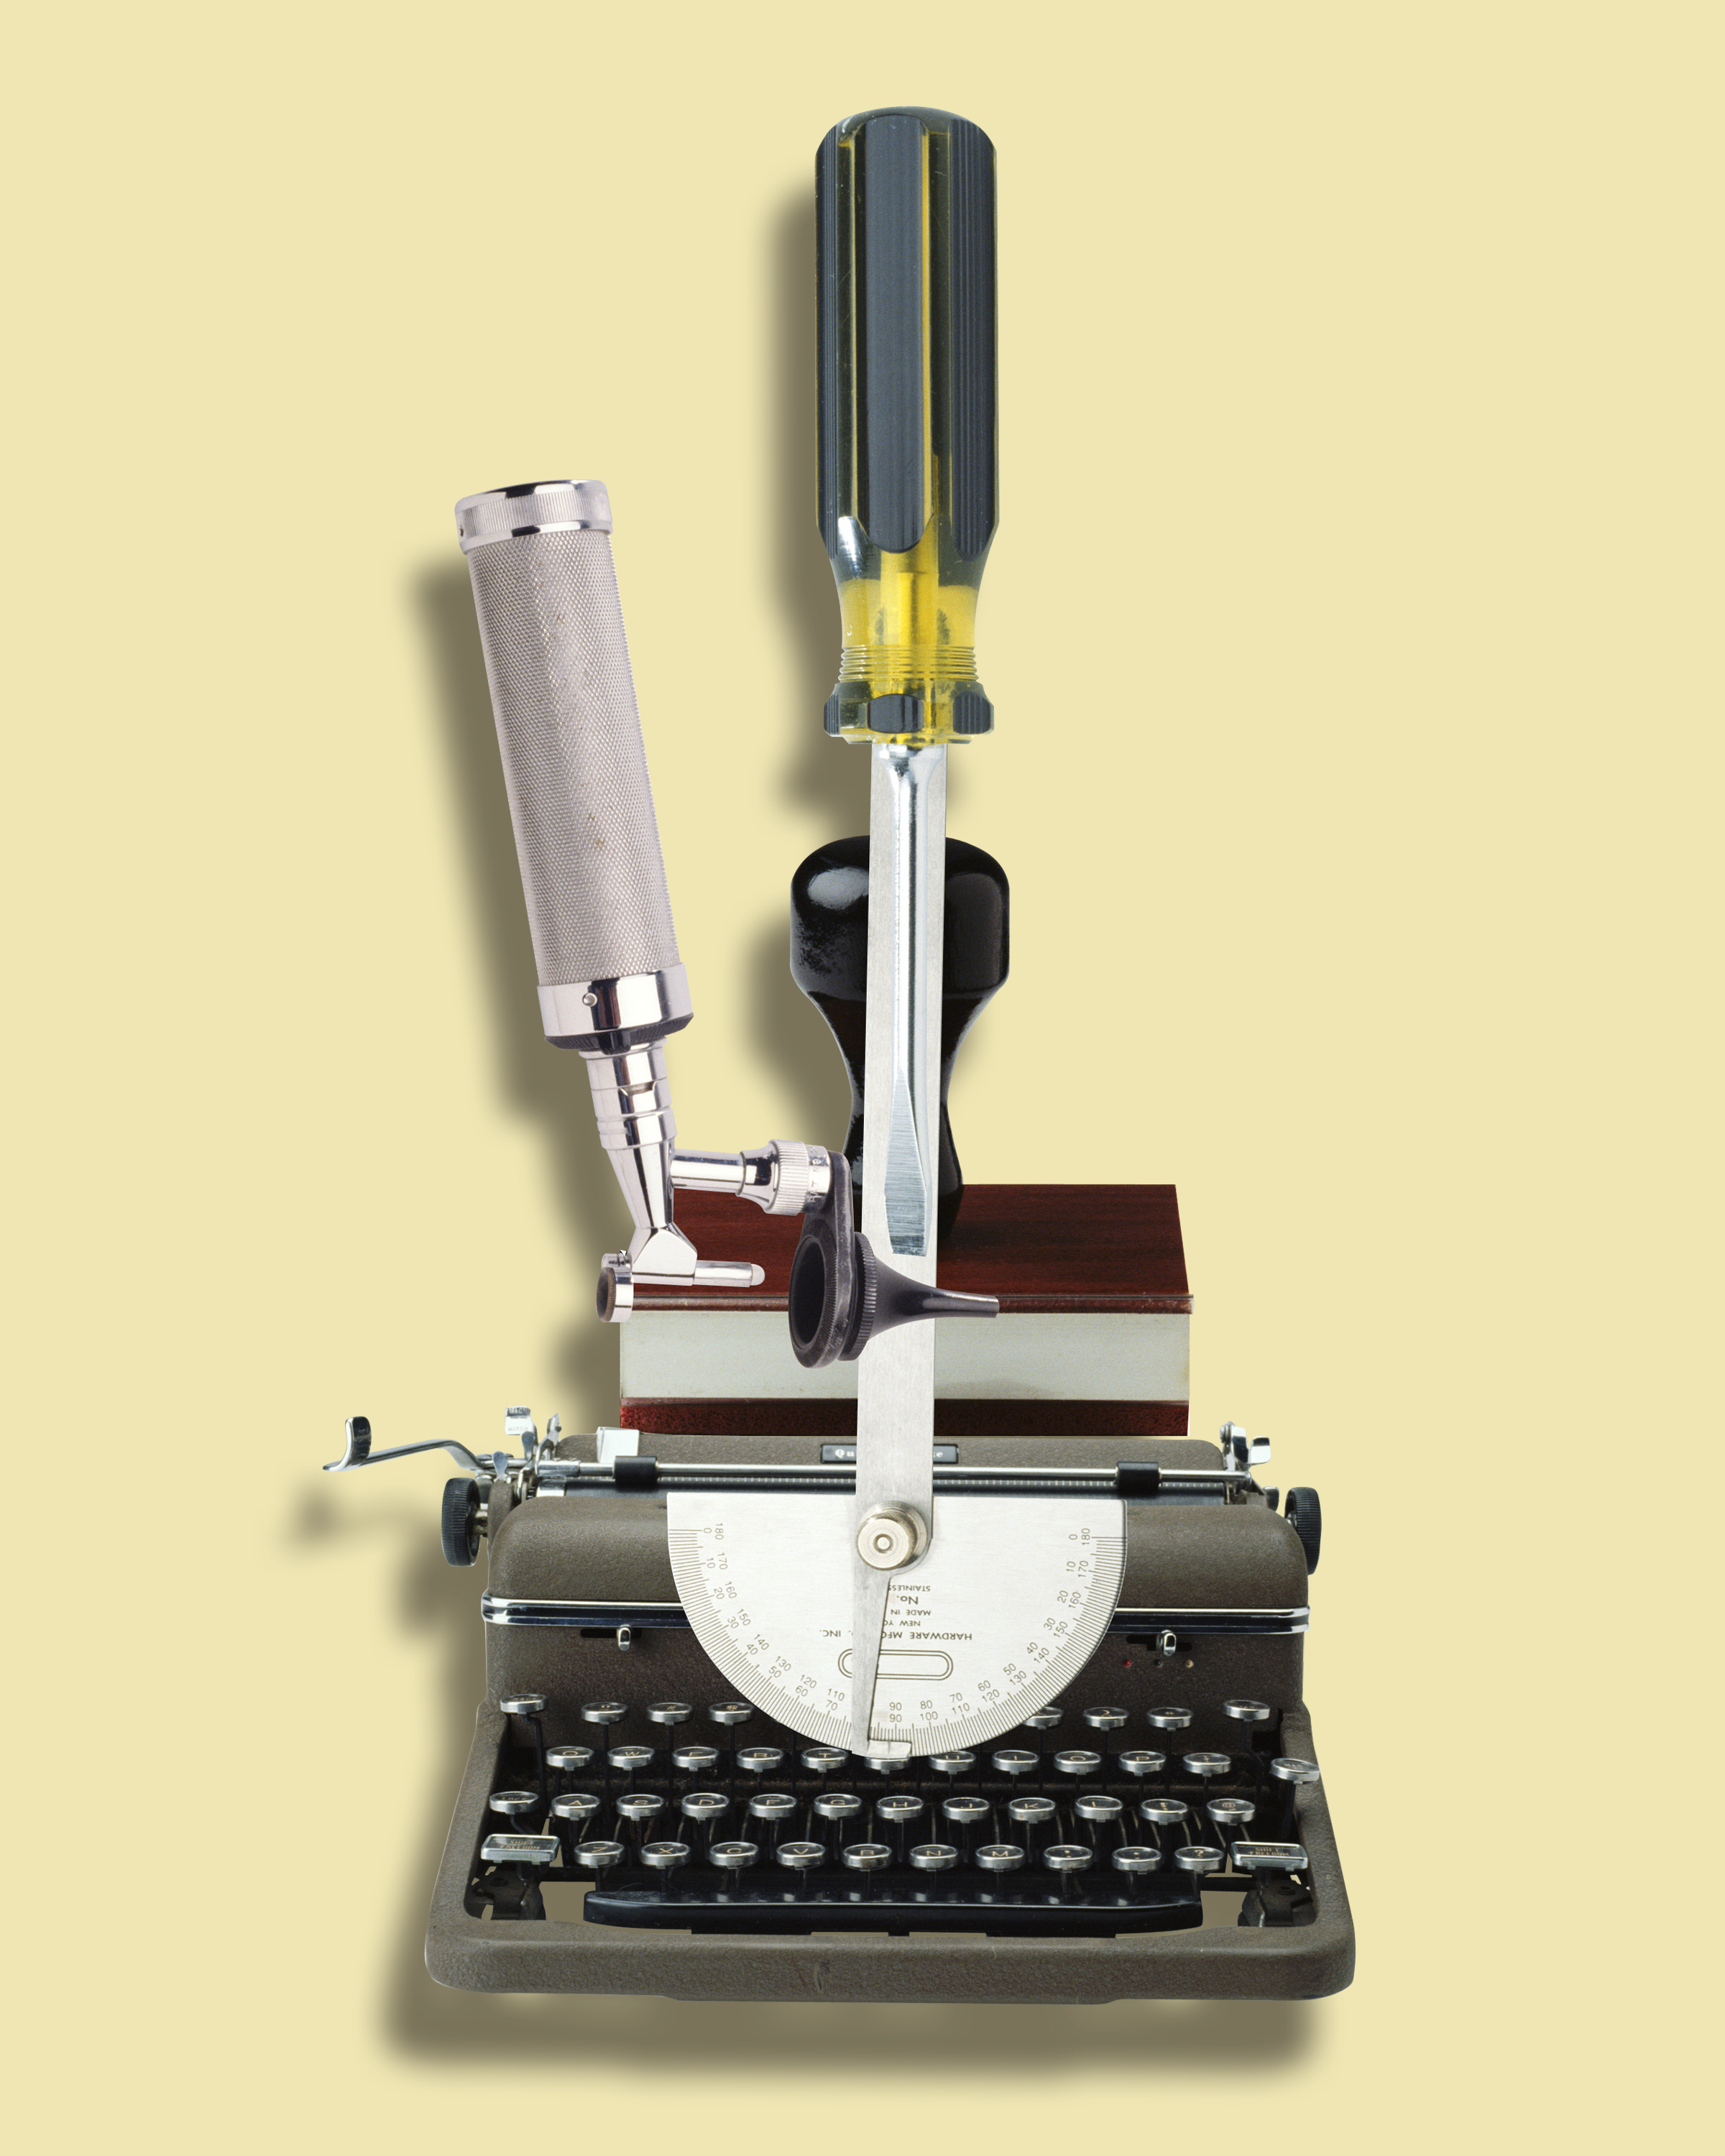 KB Object Series Typewriter 23 color.jpg